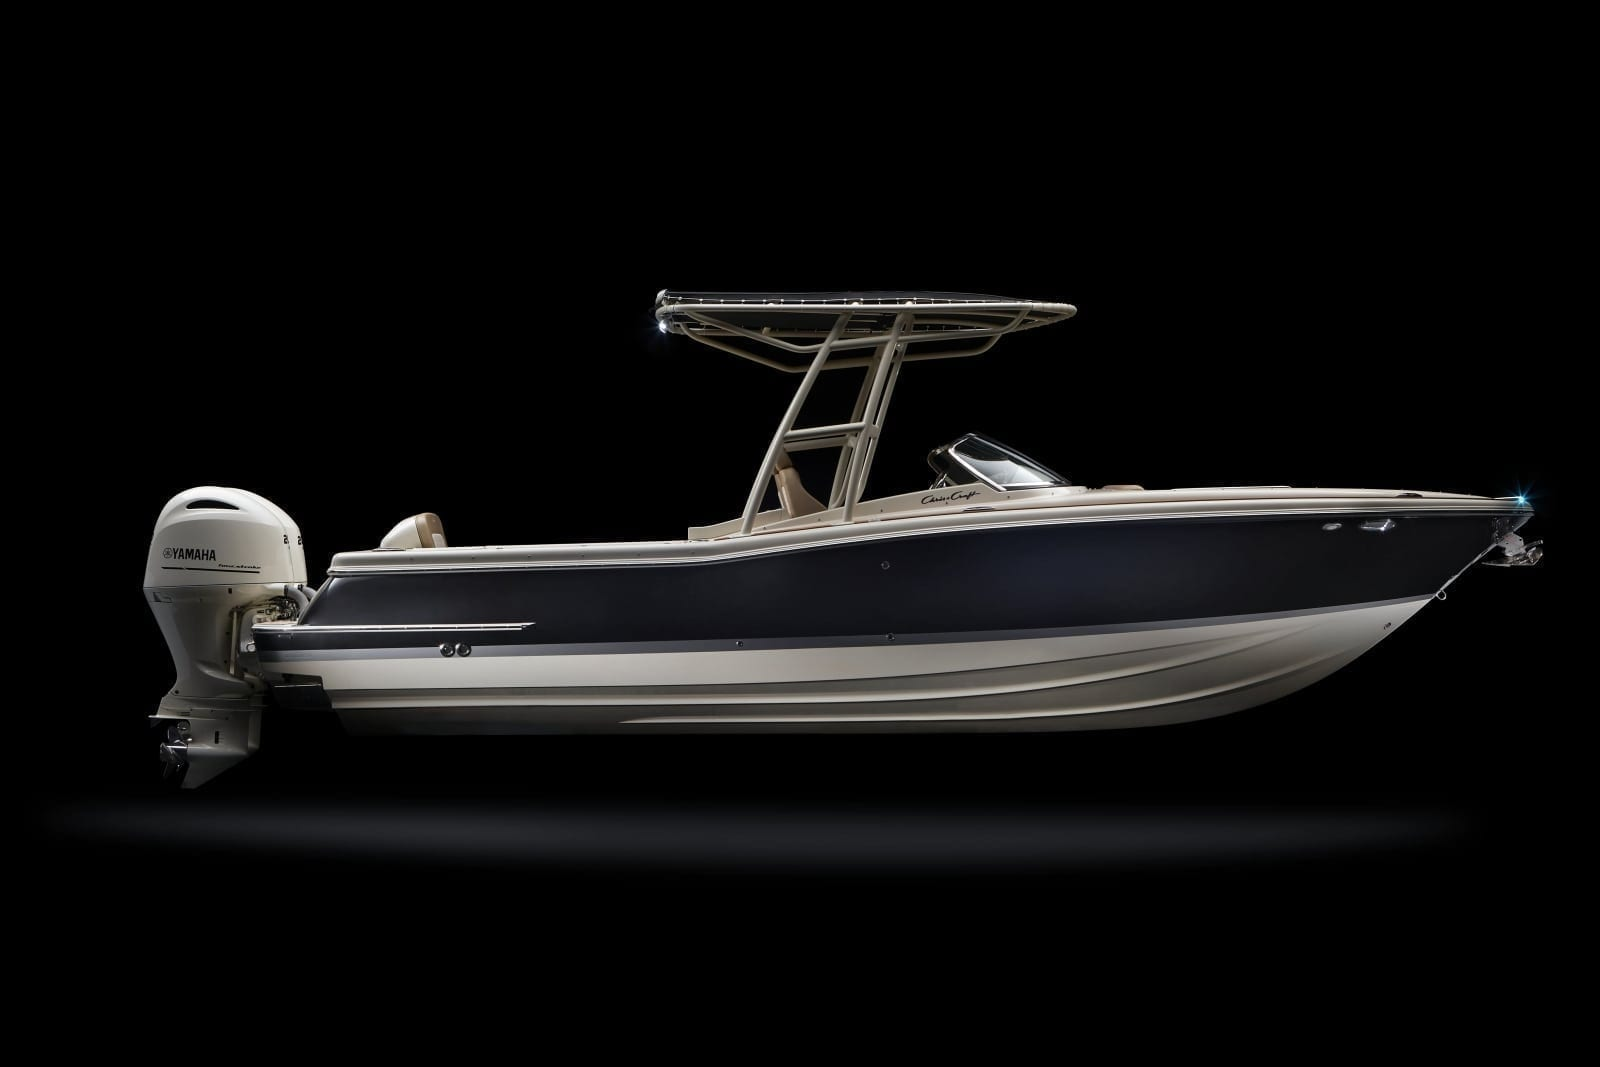 Chris Craft Calypso 26 Starboard Side Profile View